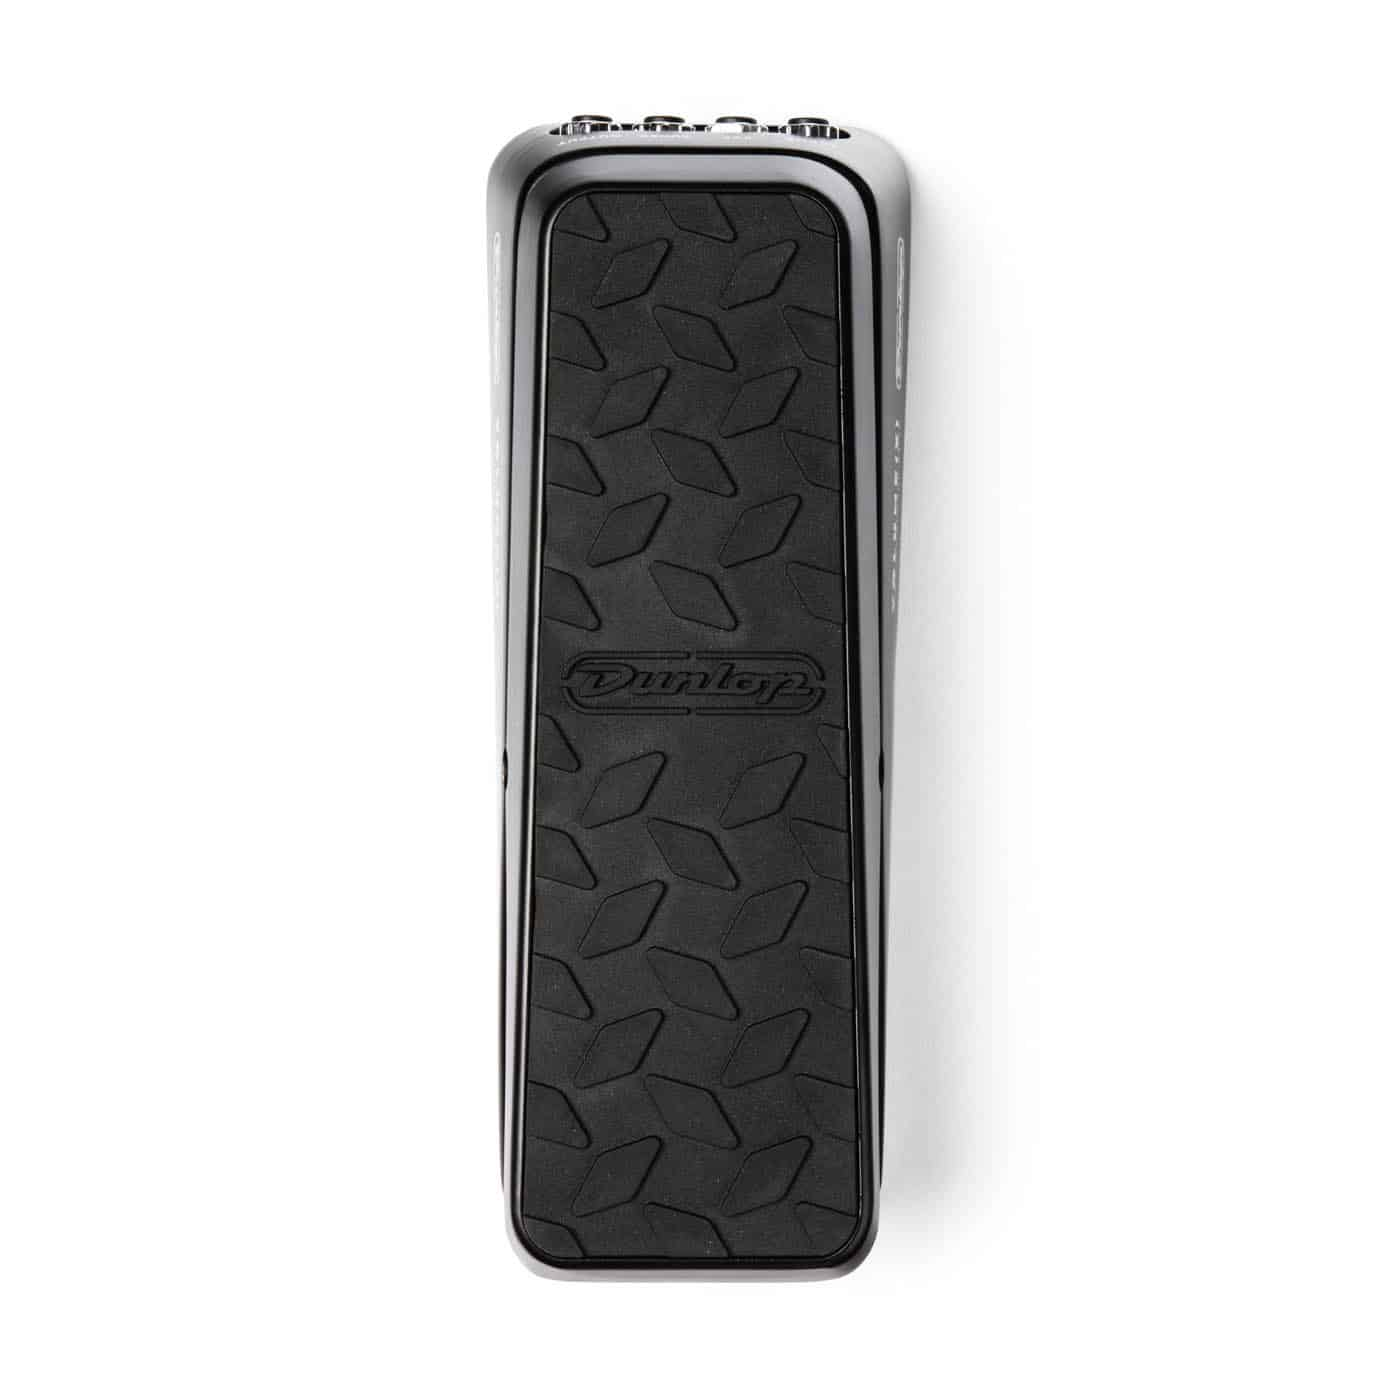 Picture of a DVP3 Dunlop Volume (X) Pedal